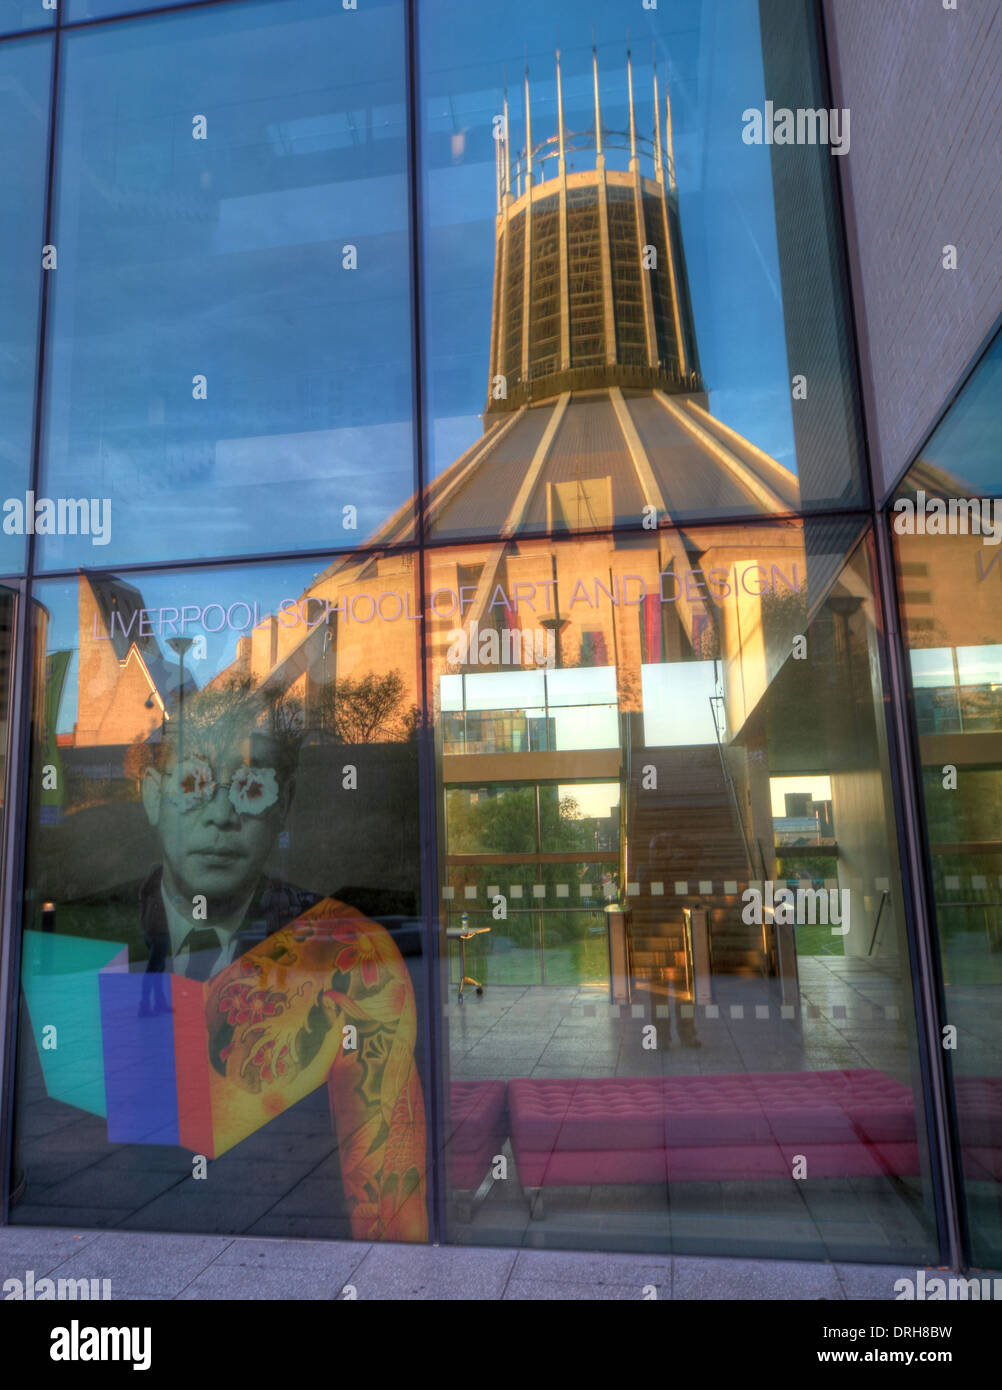 Liverpool Catholic Cathedral Reflected in School Of Art, England UK - Stock Image